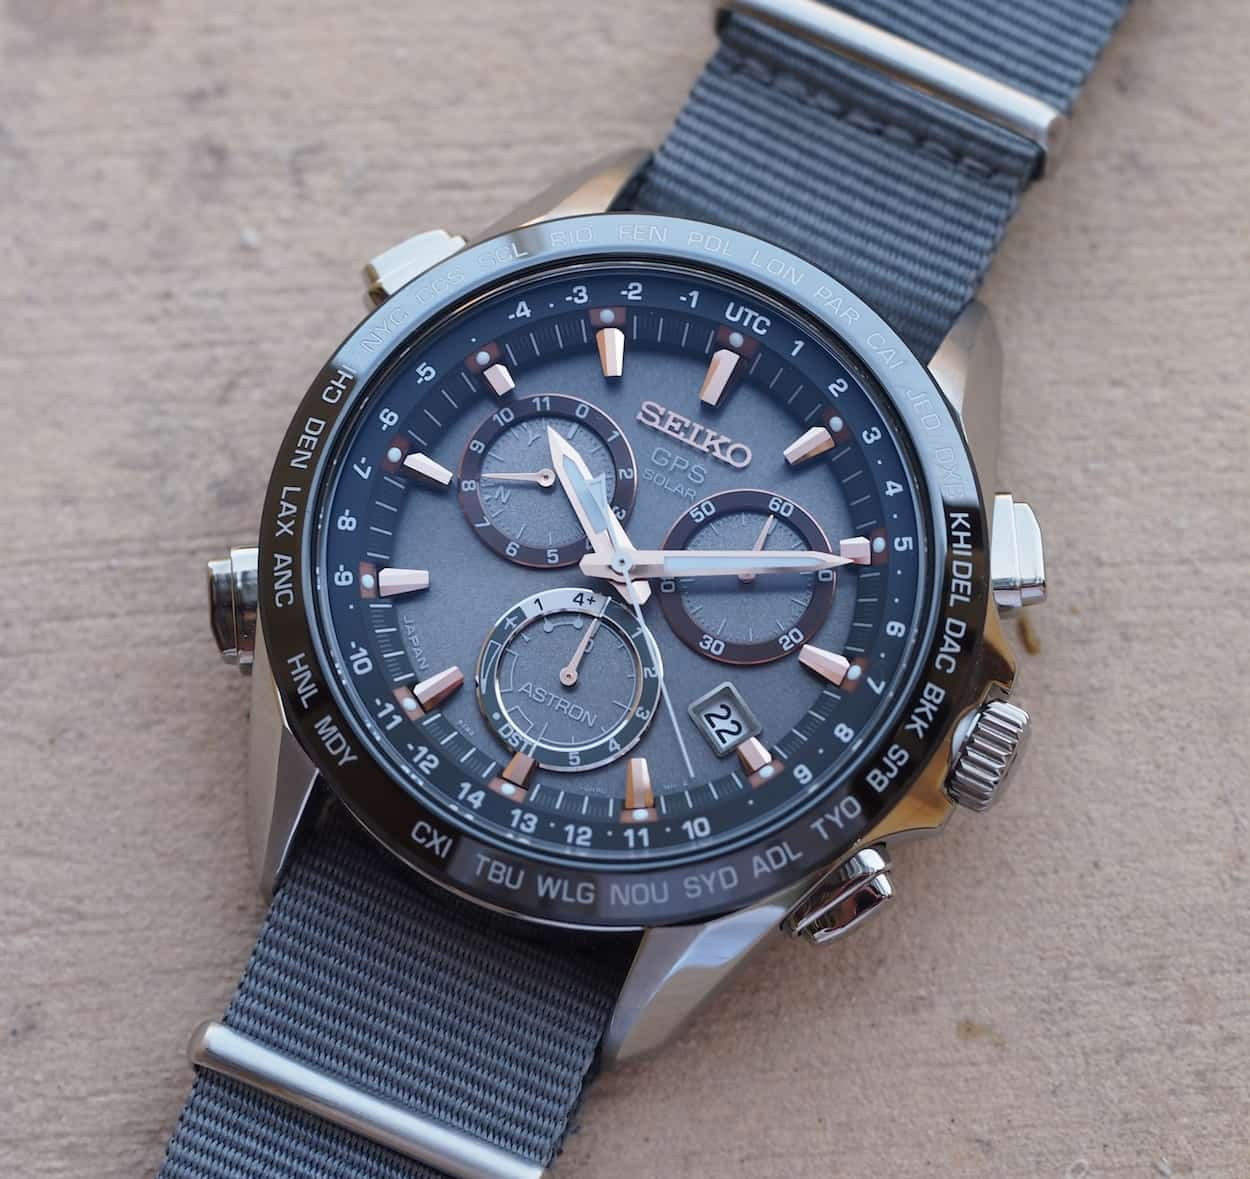 Seiko Astron made in Japan